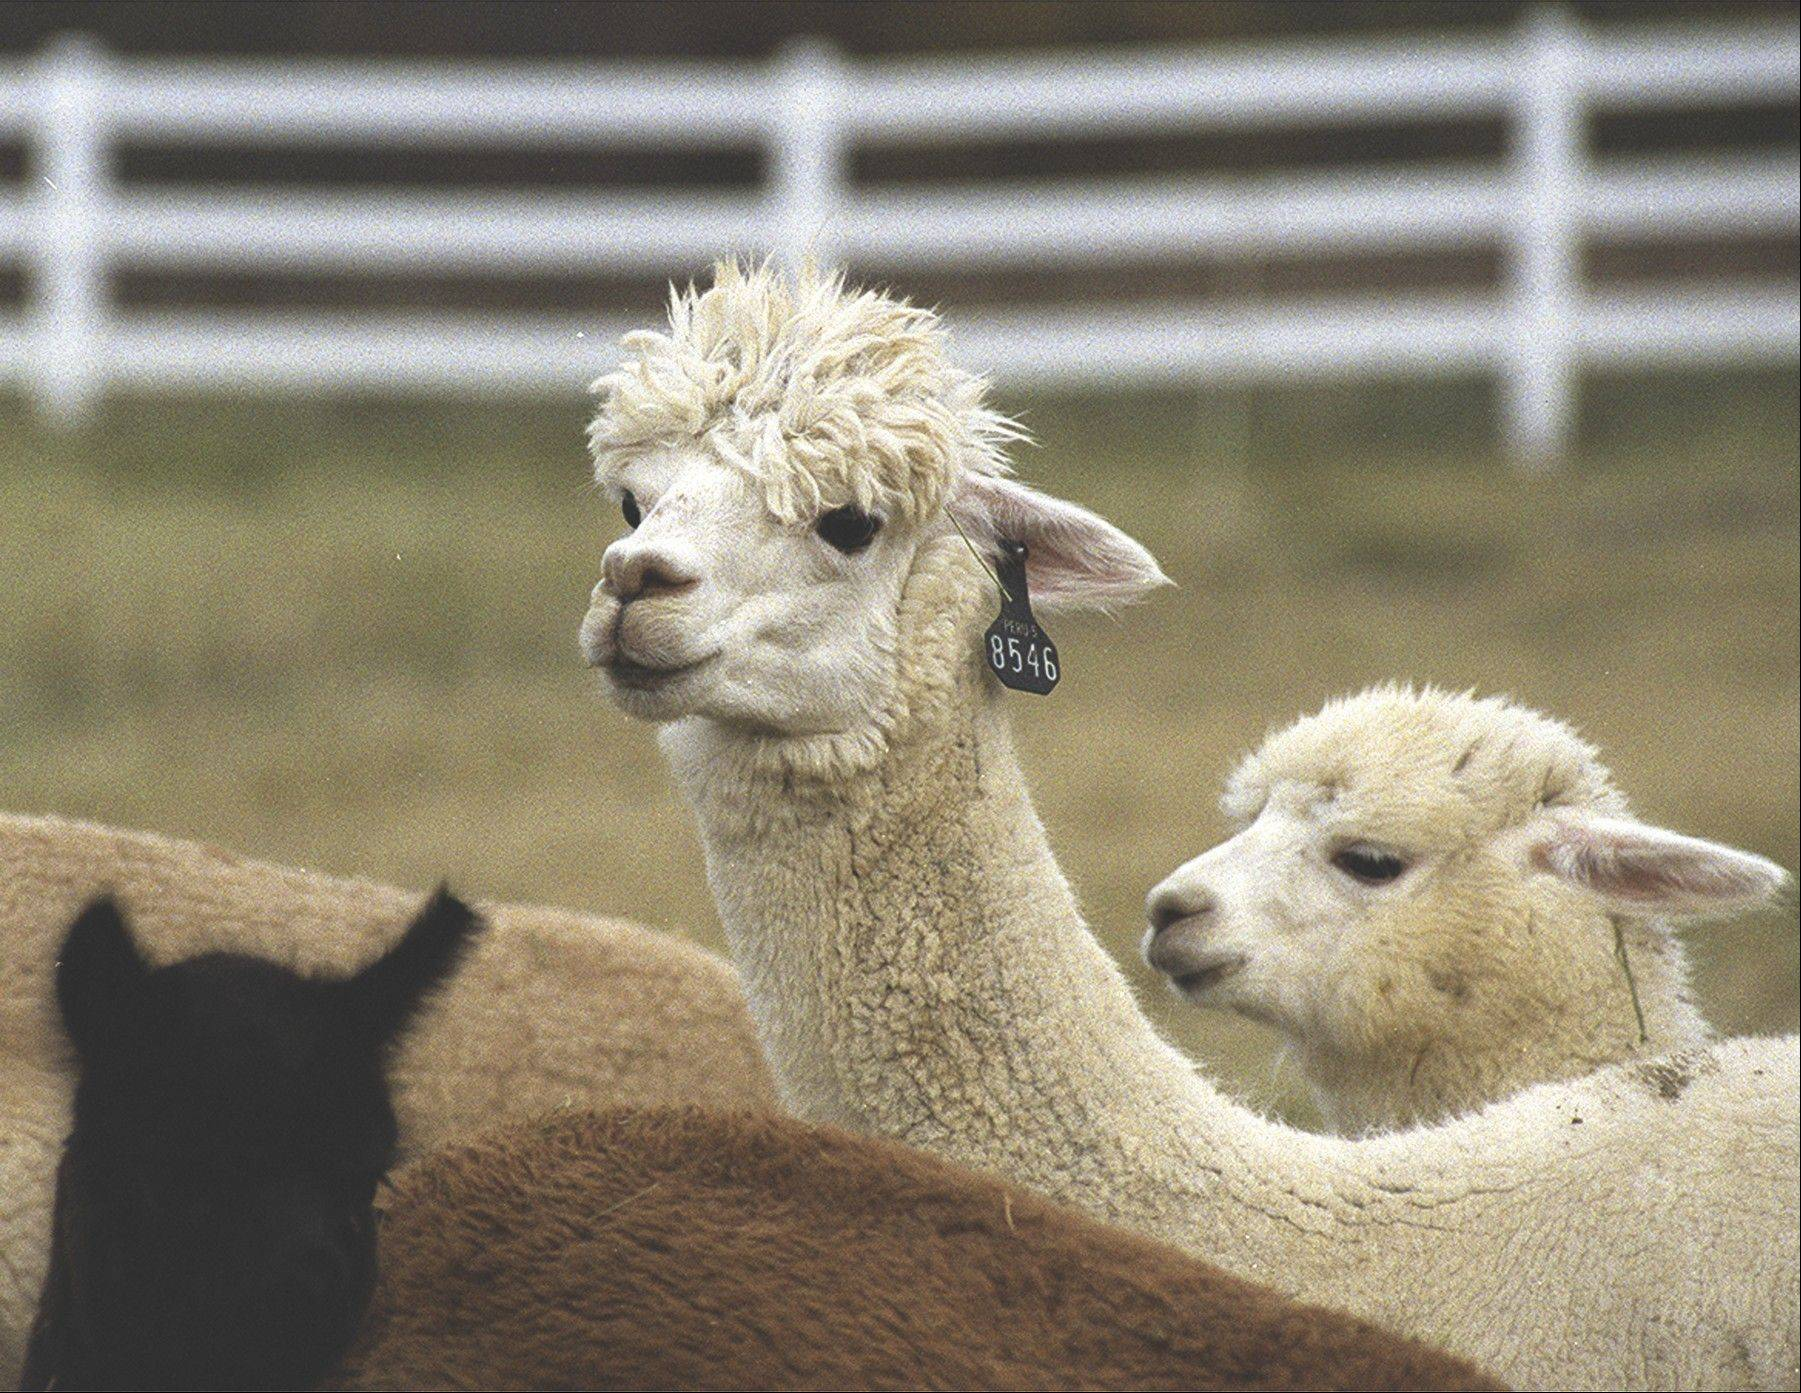 The 2013 Illinois Alpaca Show is in Grayslake Saturday and Sunday, Oct. 26 and 27.